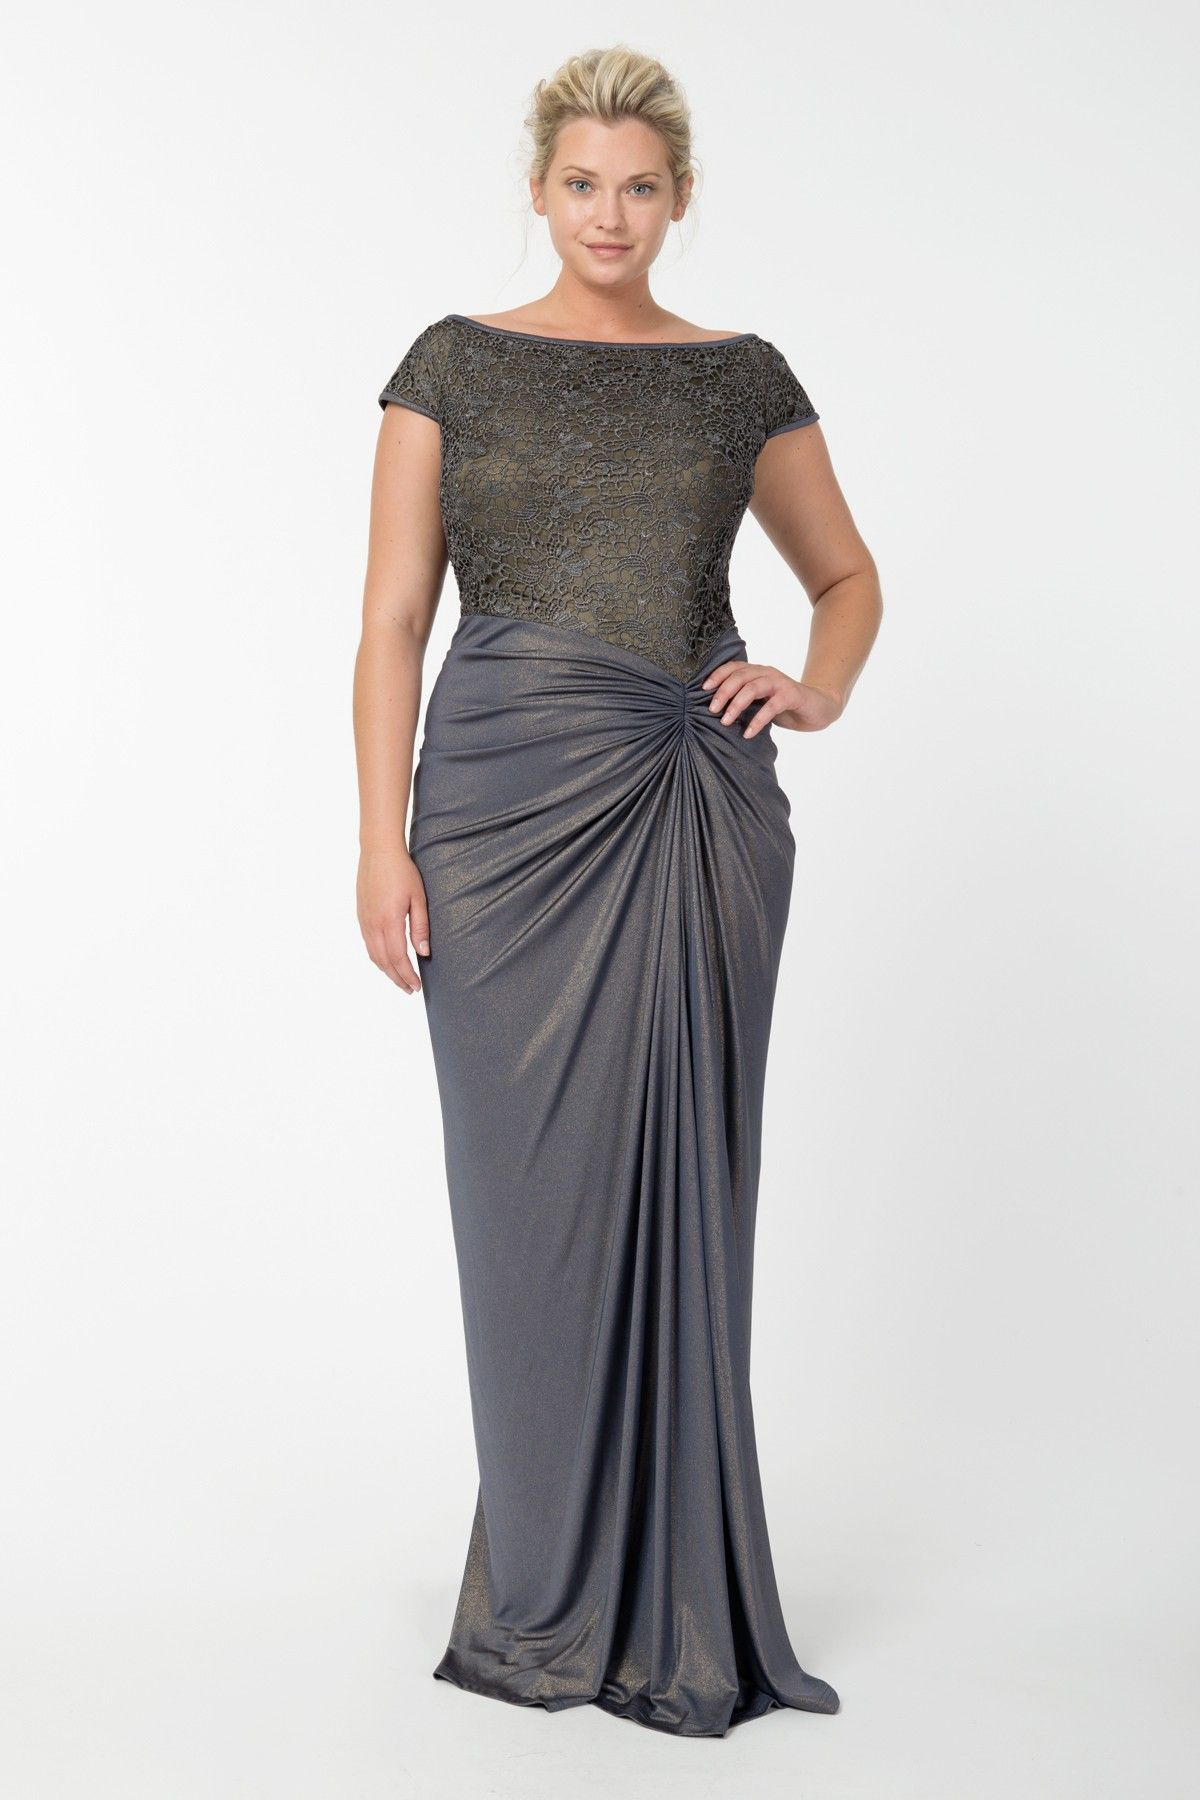 Plus size cocktail dresses designer prom dresses anywere on the